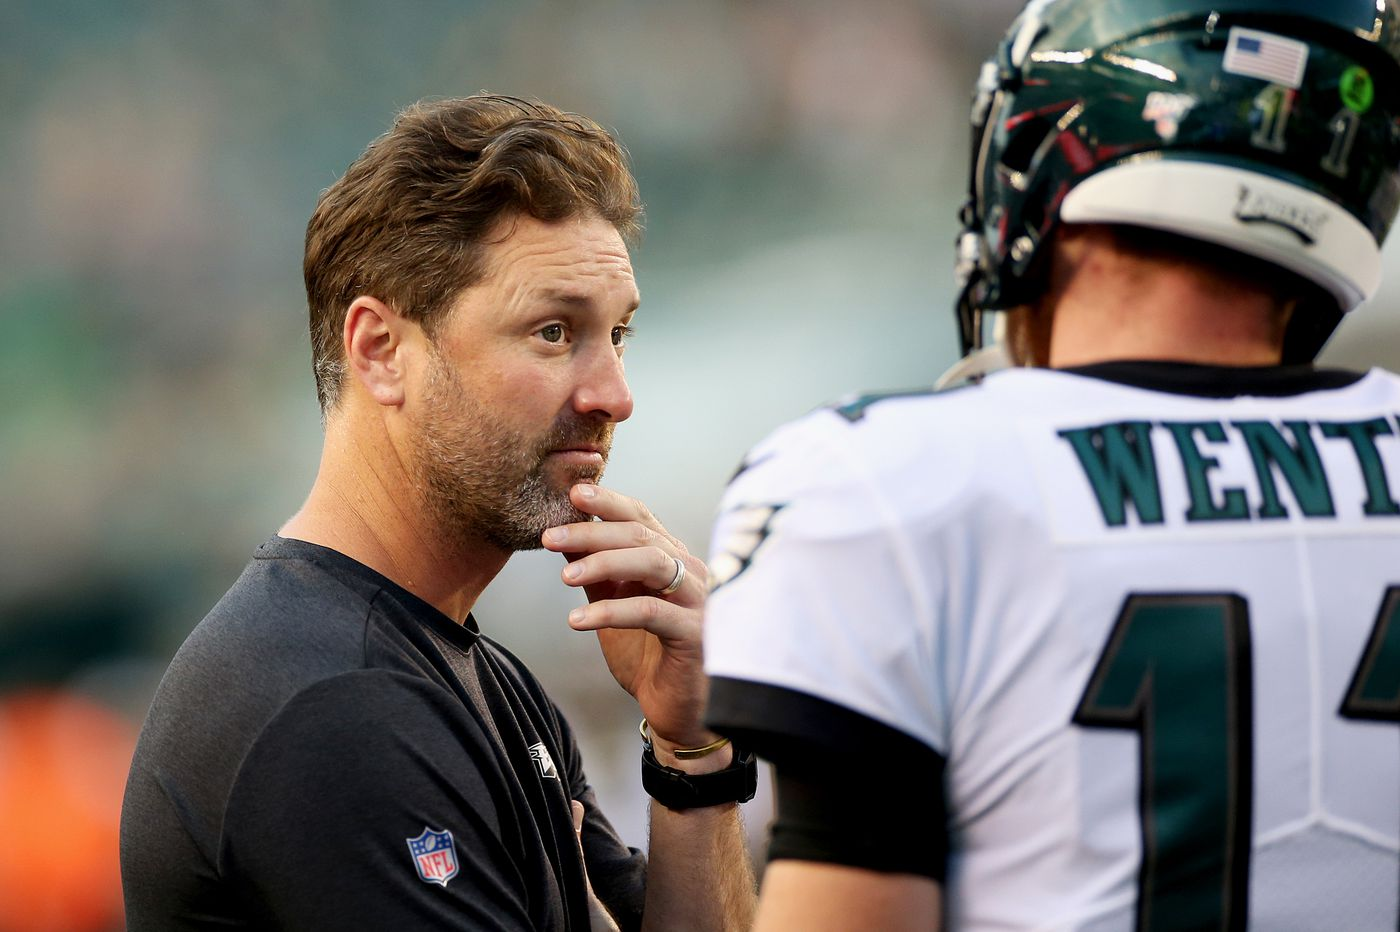 At least this time, Mike Groh and the Eagles have a chance to game-plan around the remaining receivers